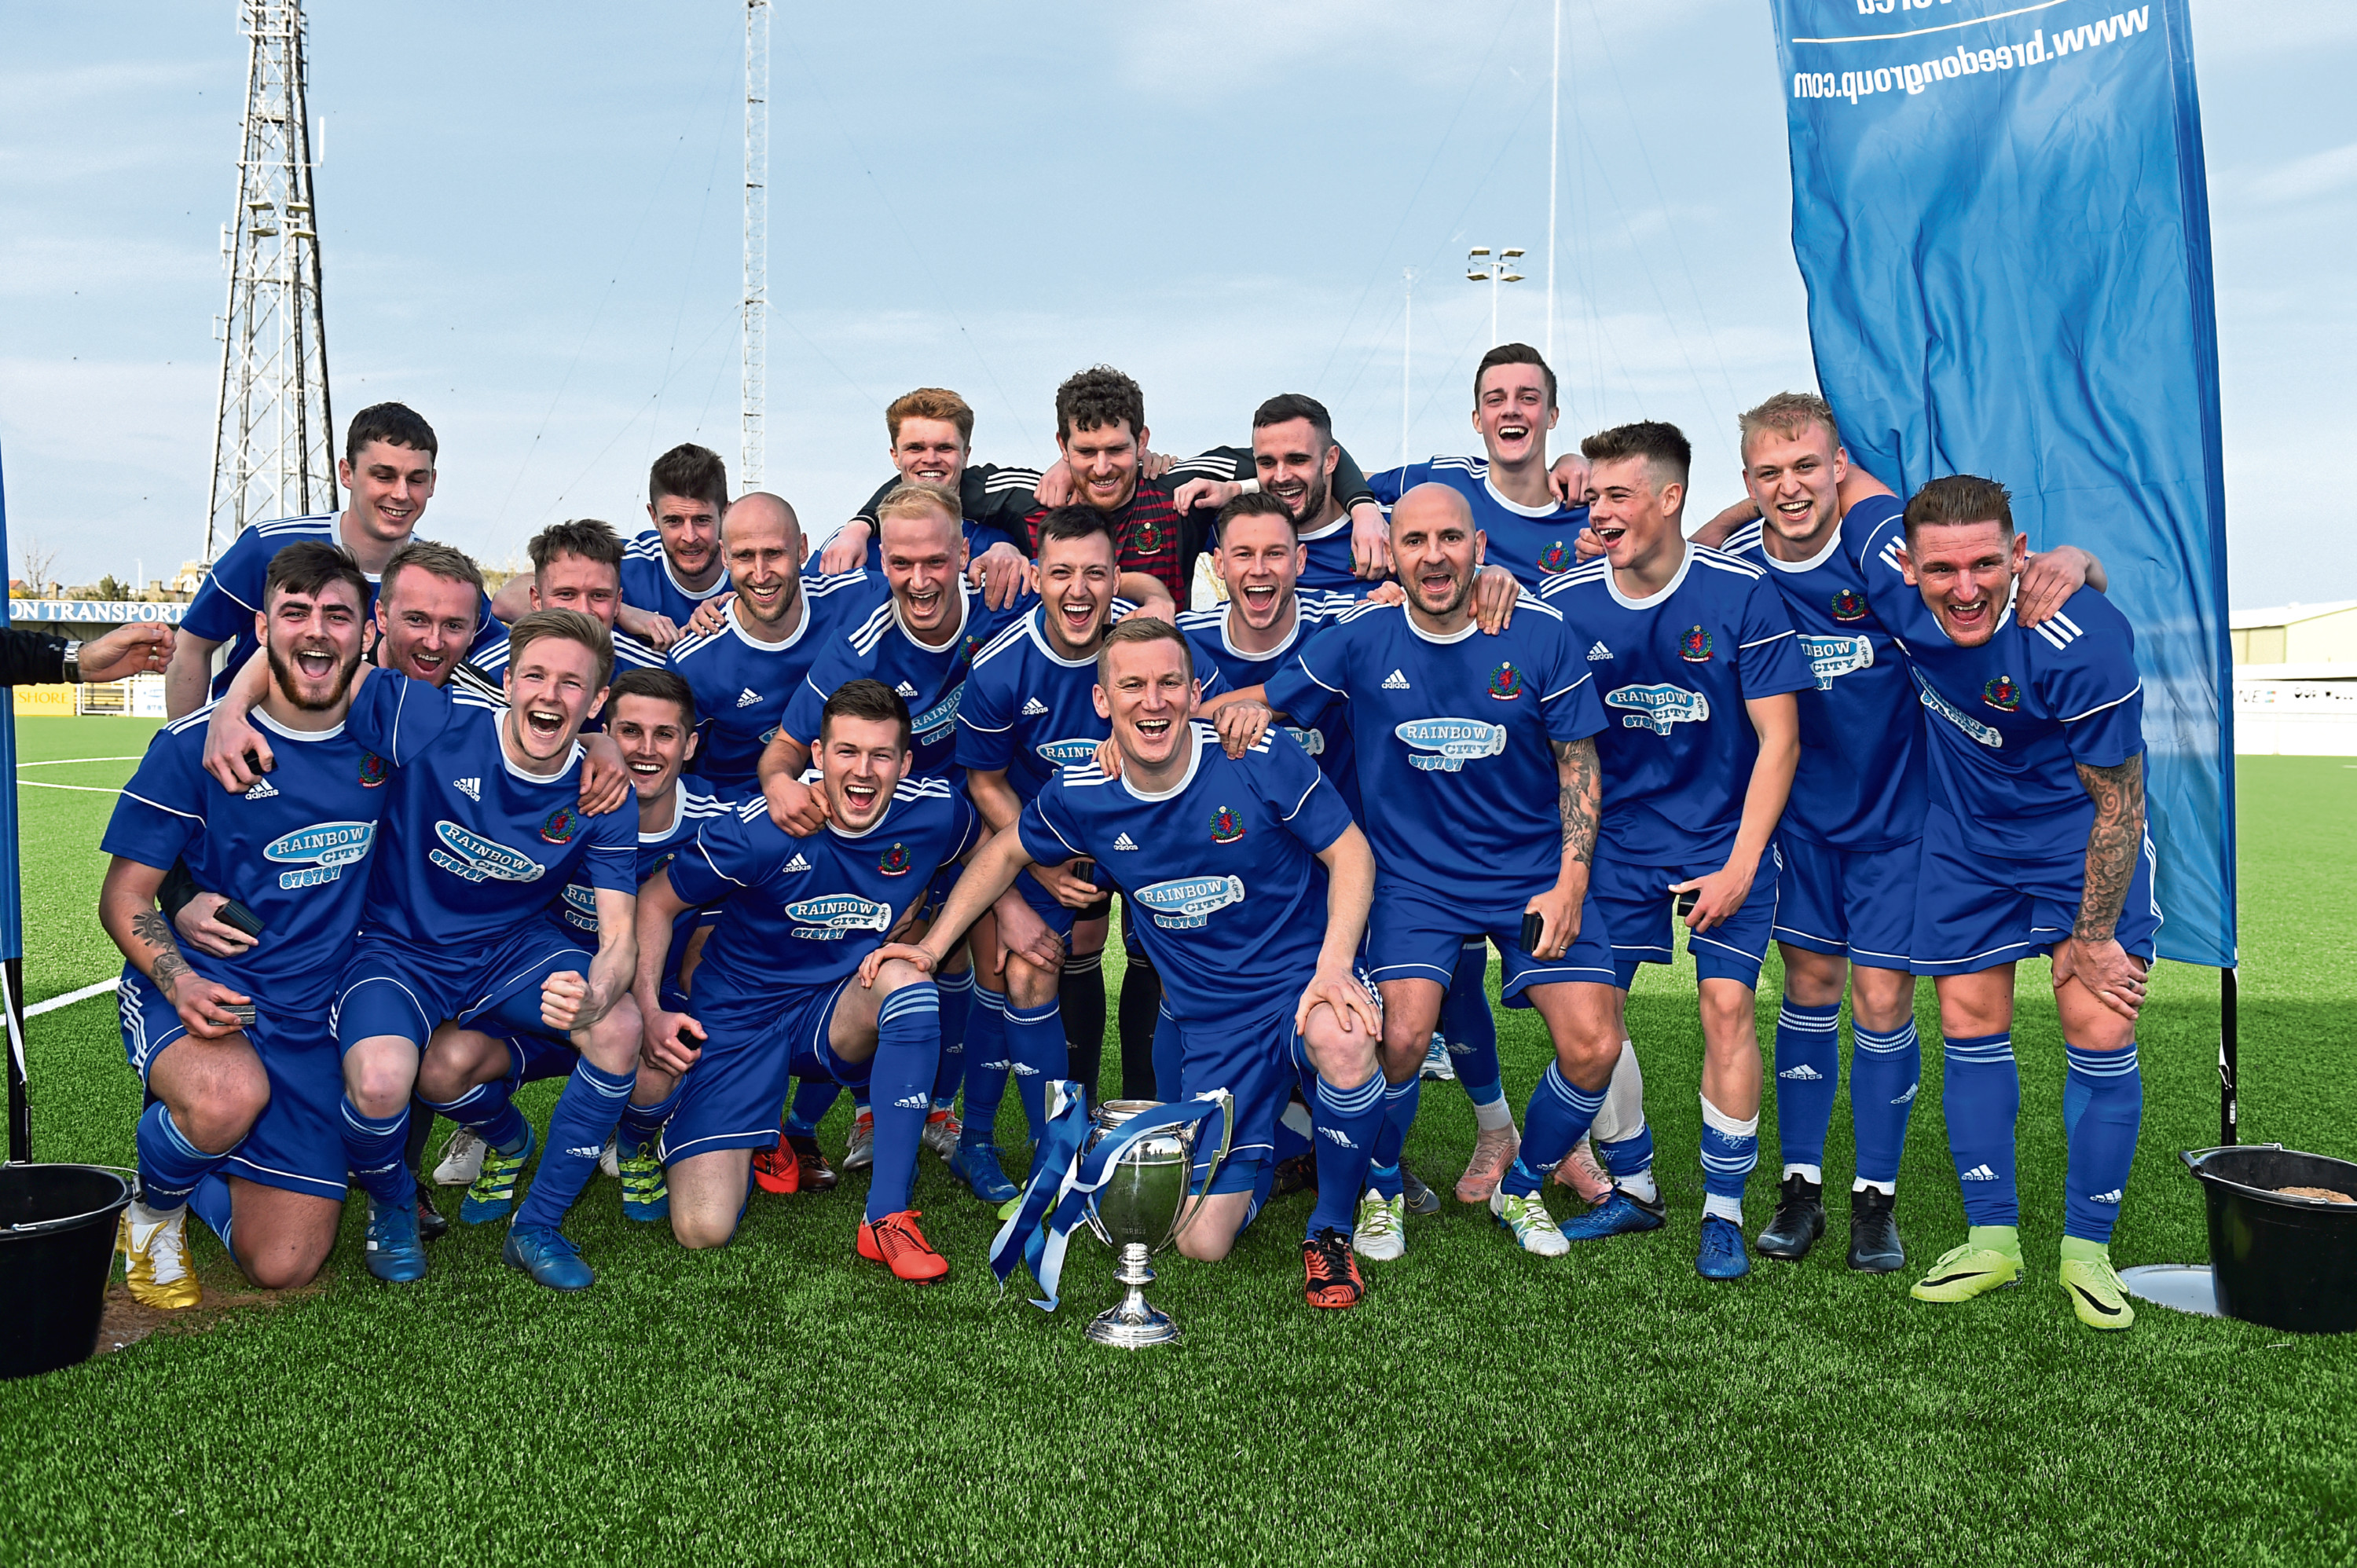 Cove Rangers celebrating with the Highland League trophy.